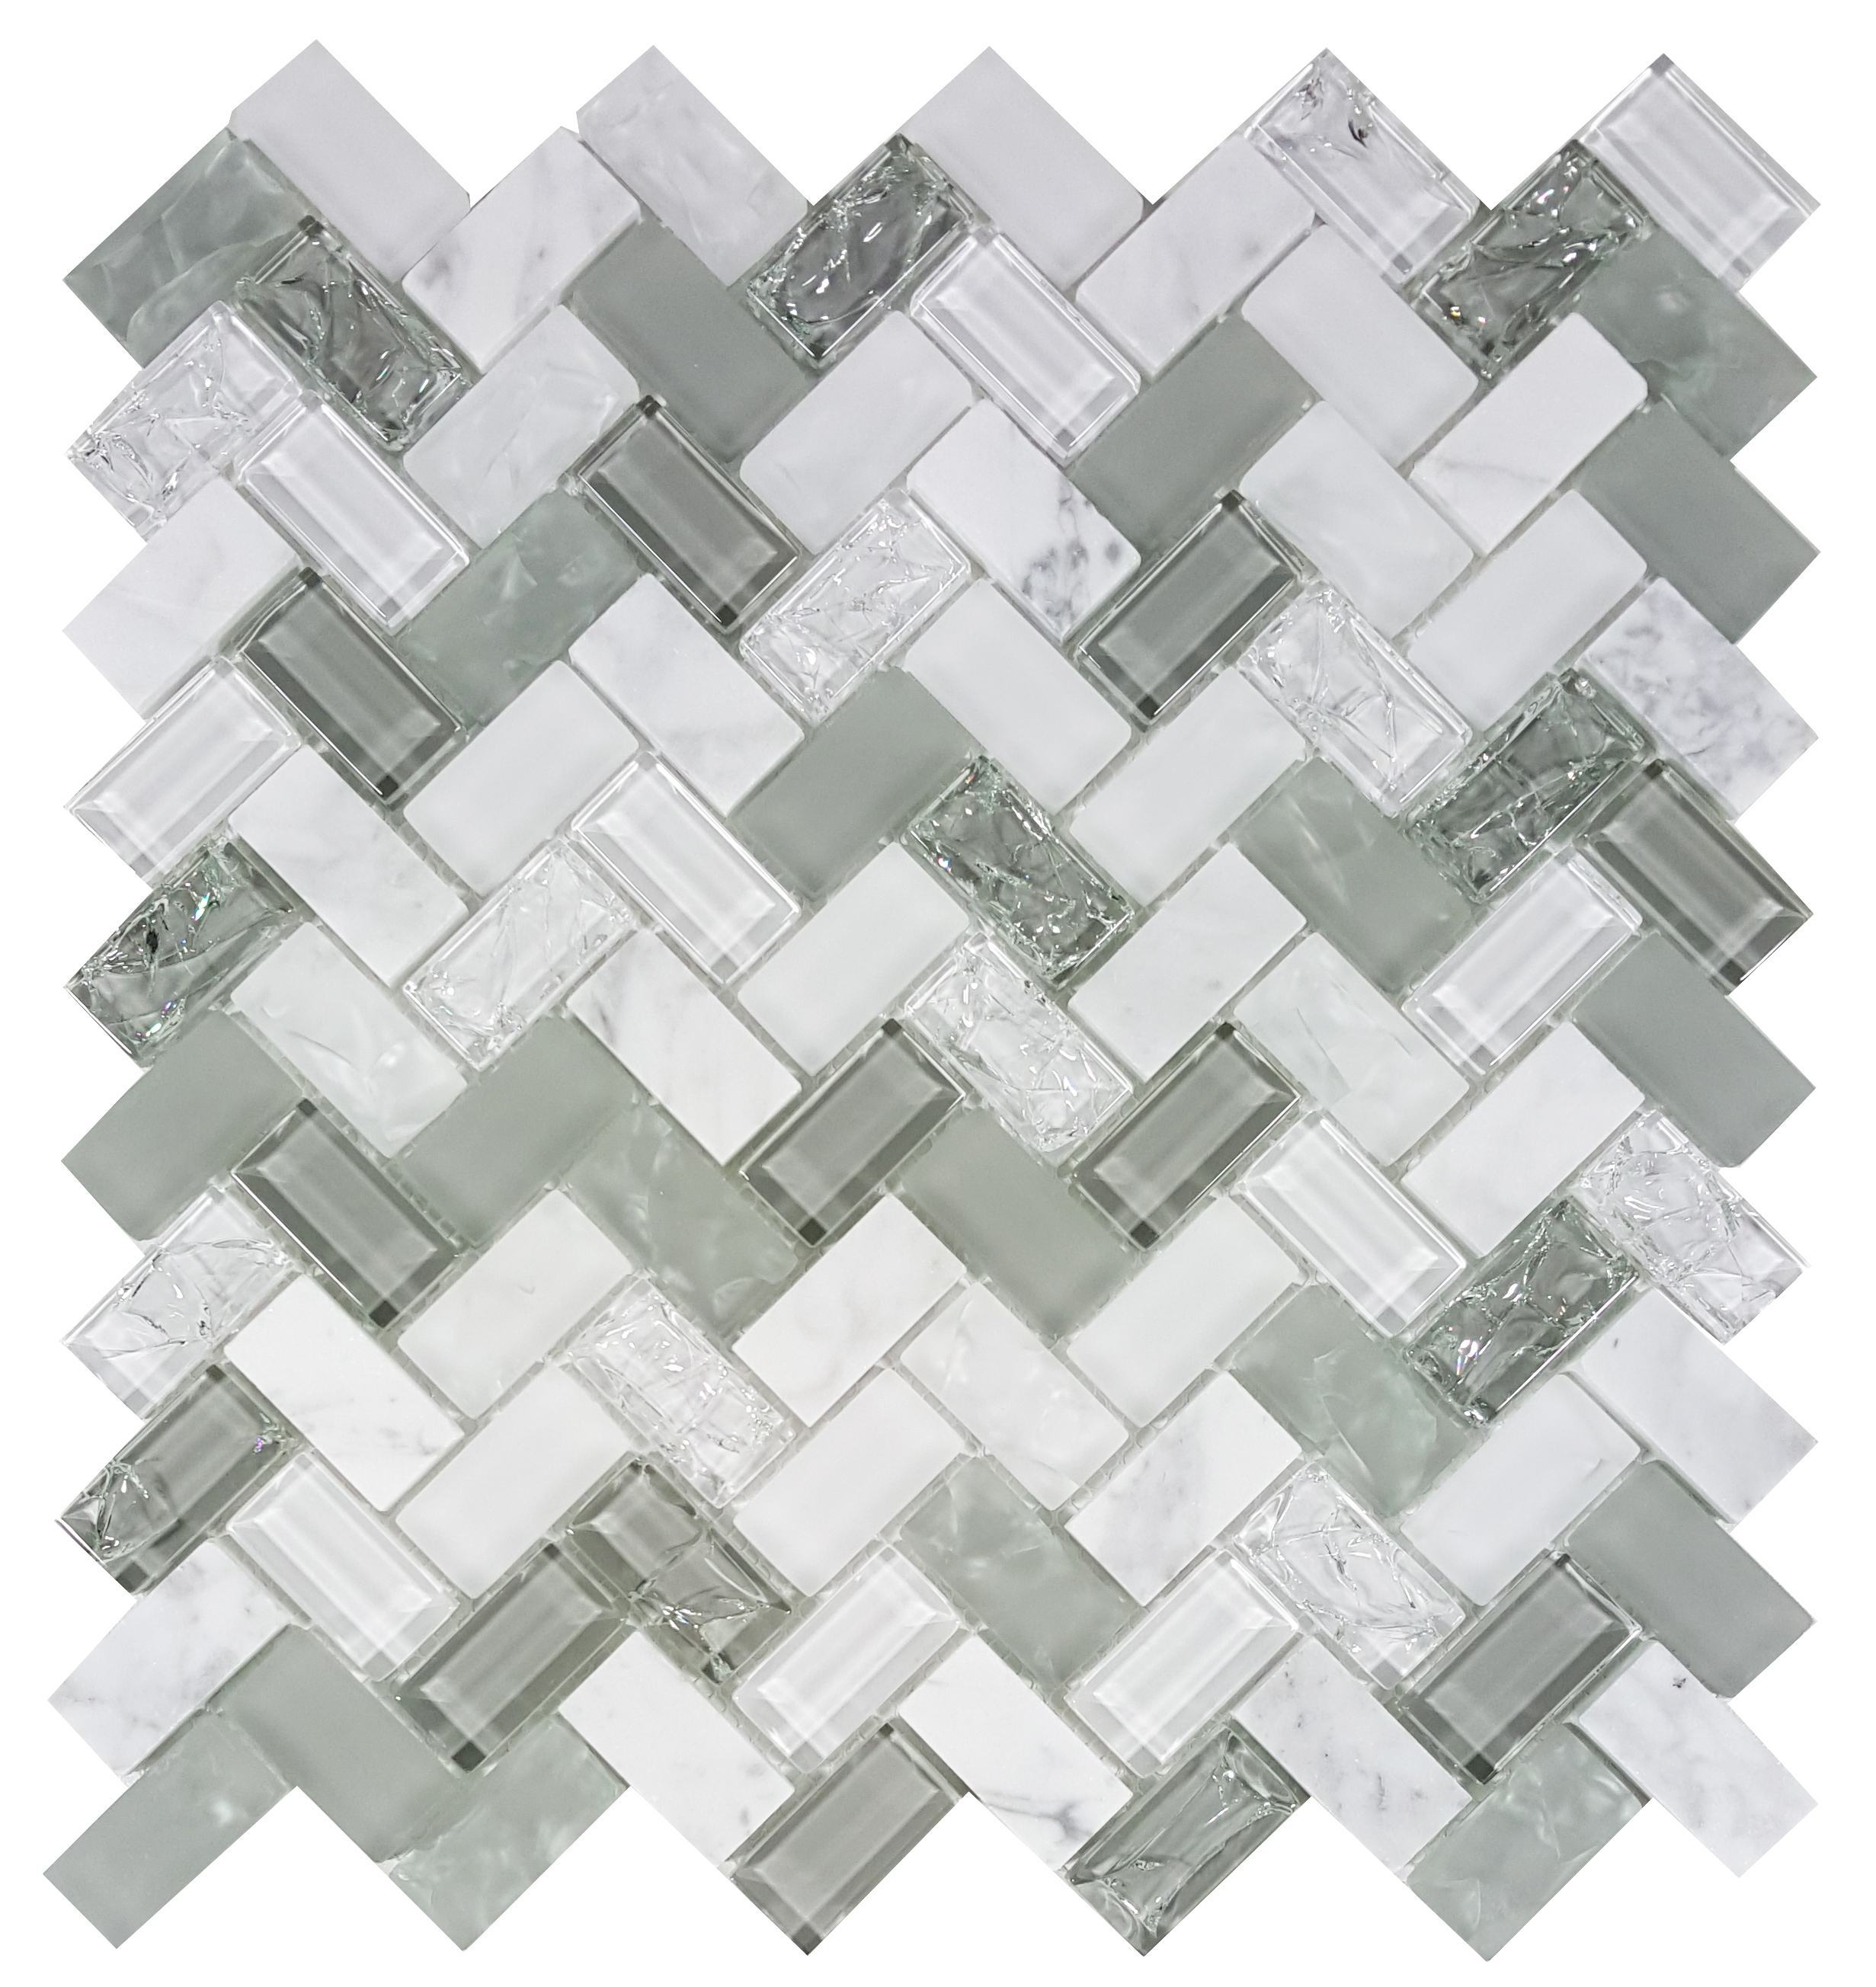 MA82-HB  HERRINGBOM GLASS AND STONE CRACKLE MOSAIC